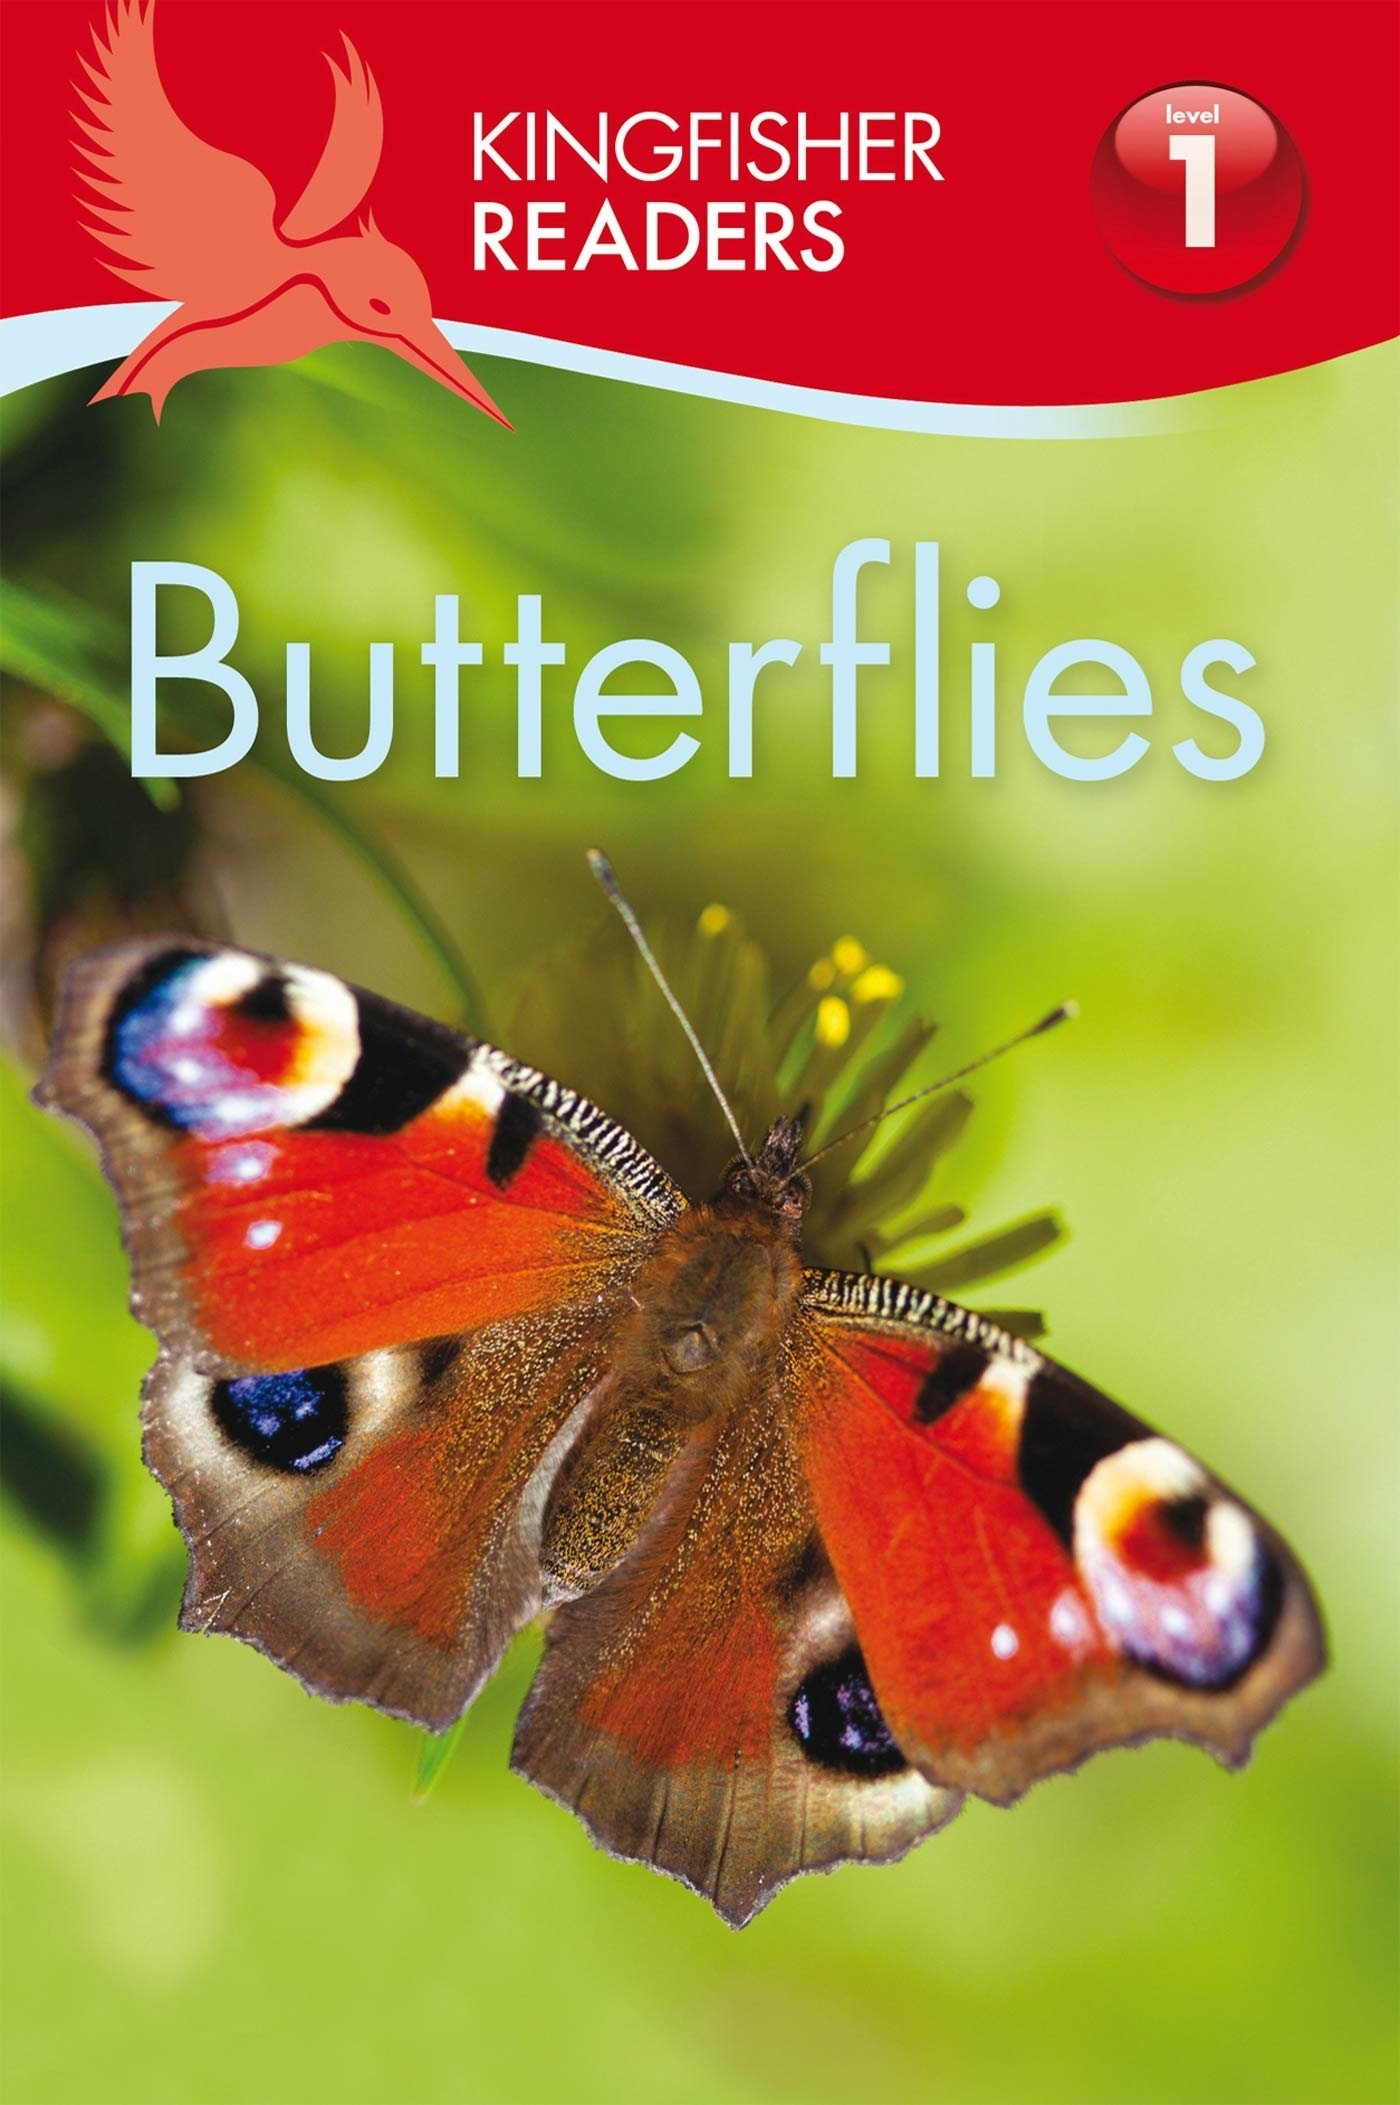 Kingfisher Readers: Butterflies (Level 1: Beginning to Read) butterflies in the barley